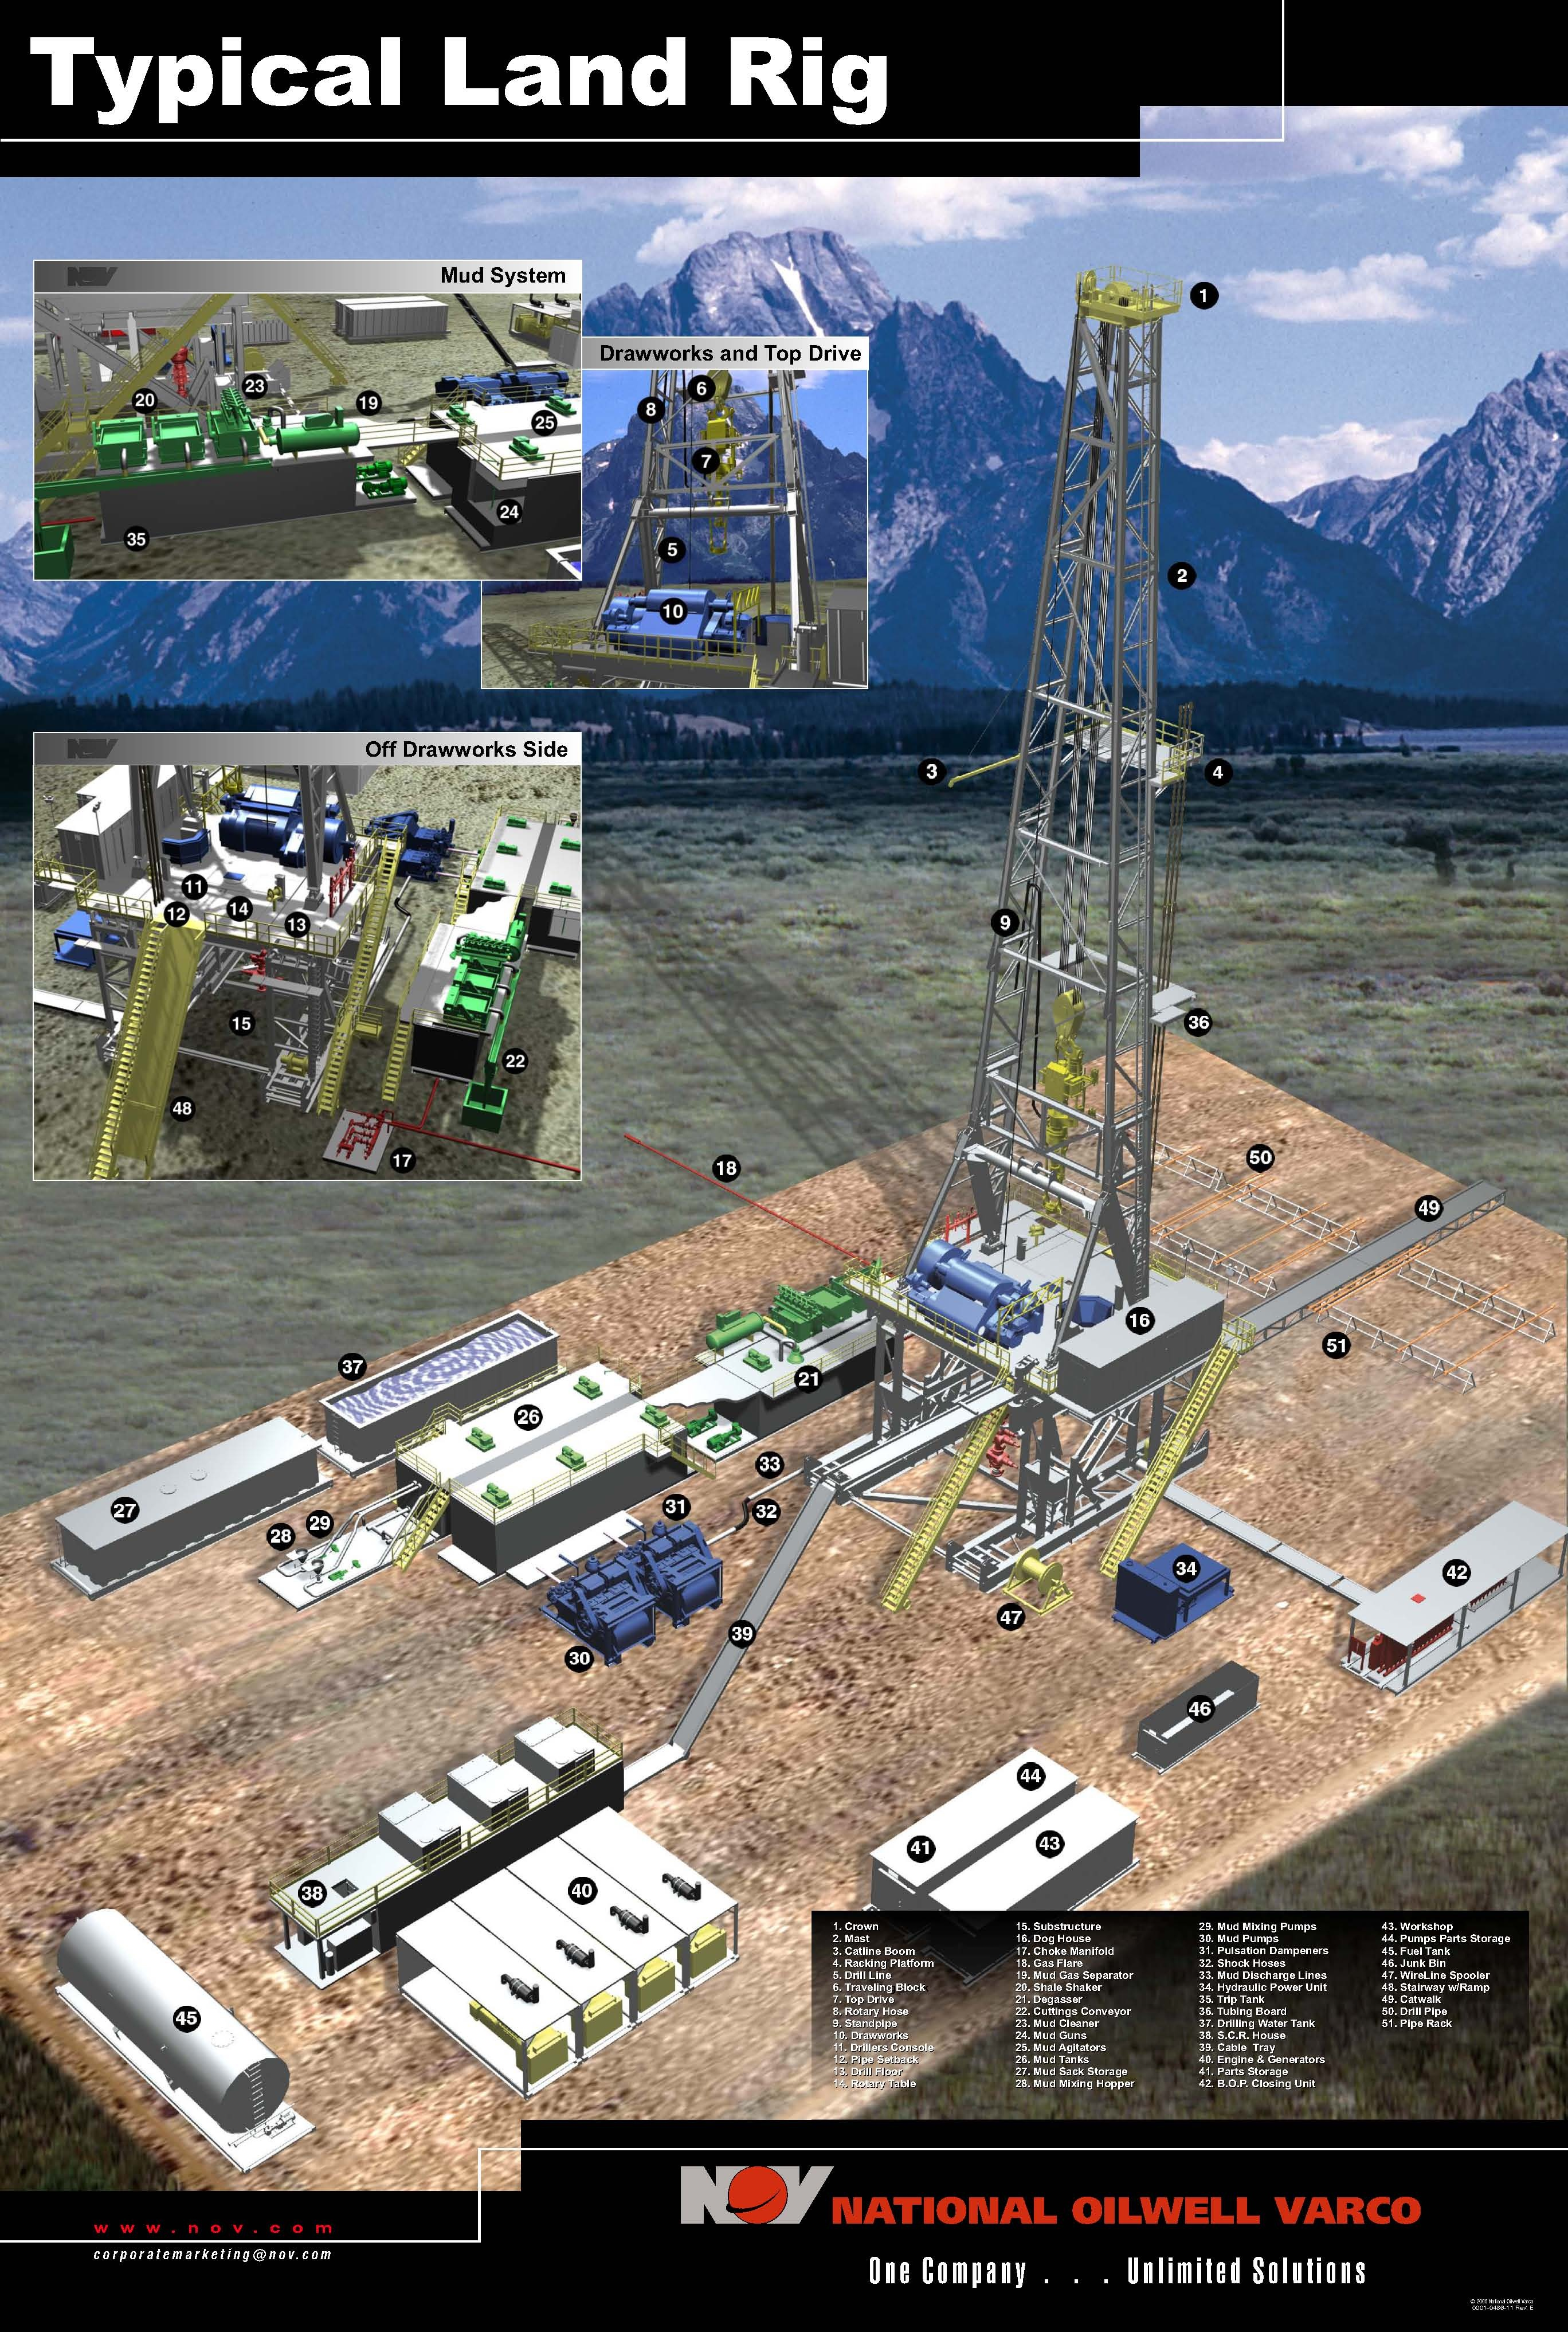 oil rig diagram 2000 ford f150 xlt radio wiring typical land drilling wata malaysian and gas